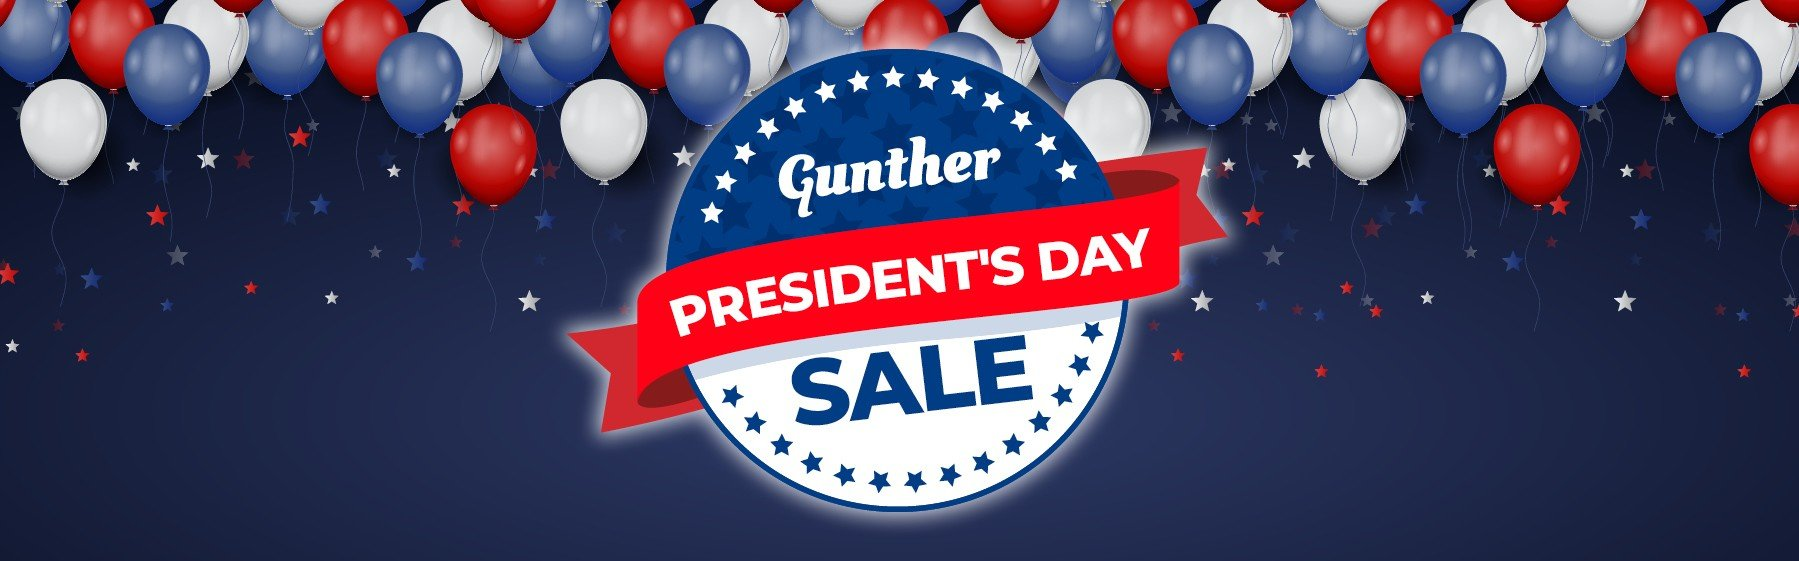 Gunther President's Day Sale